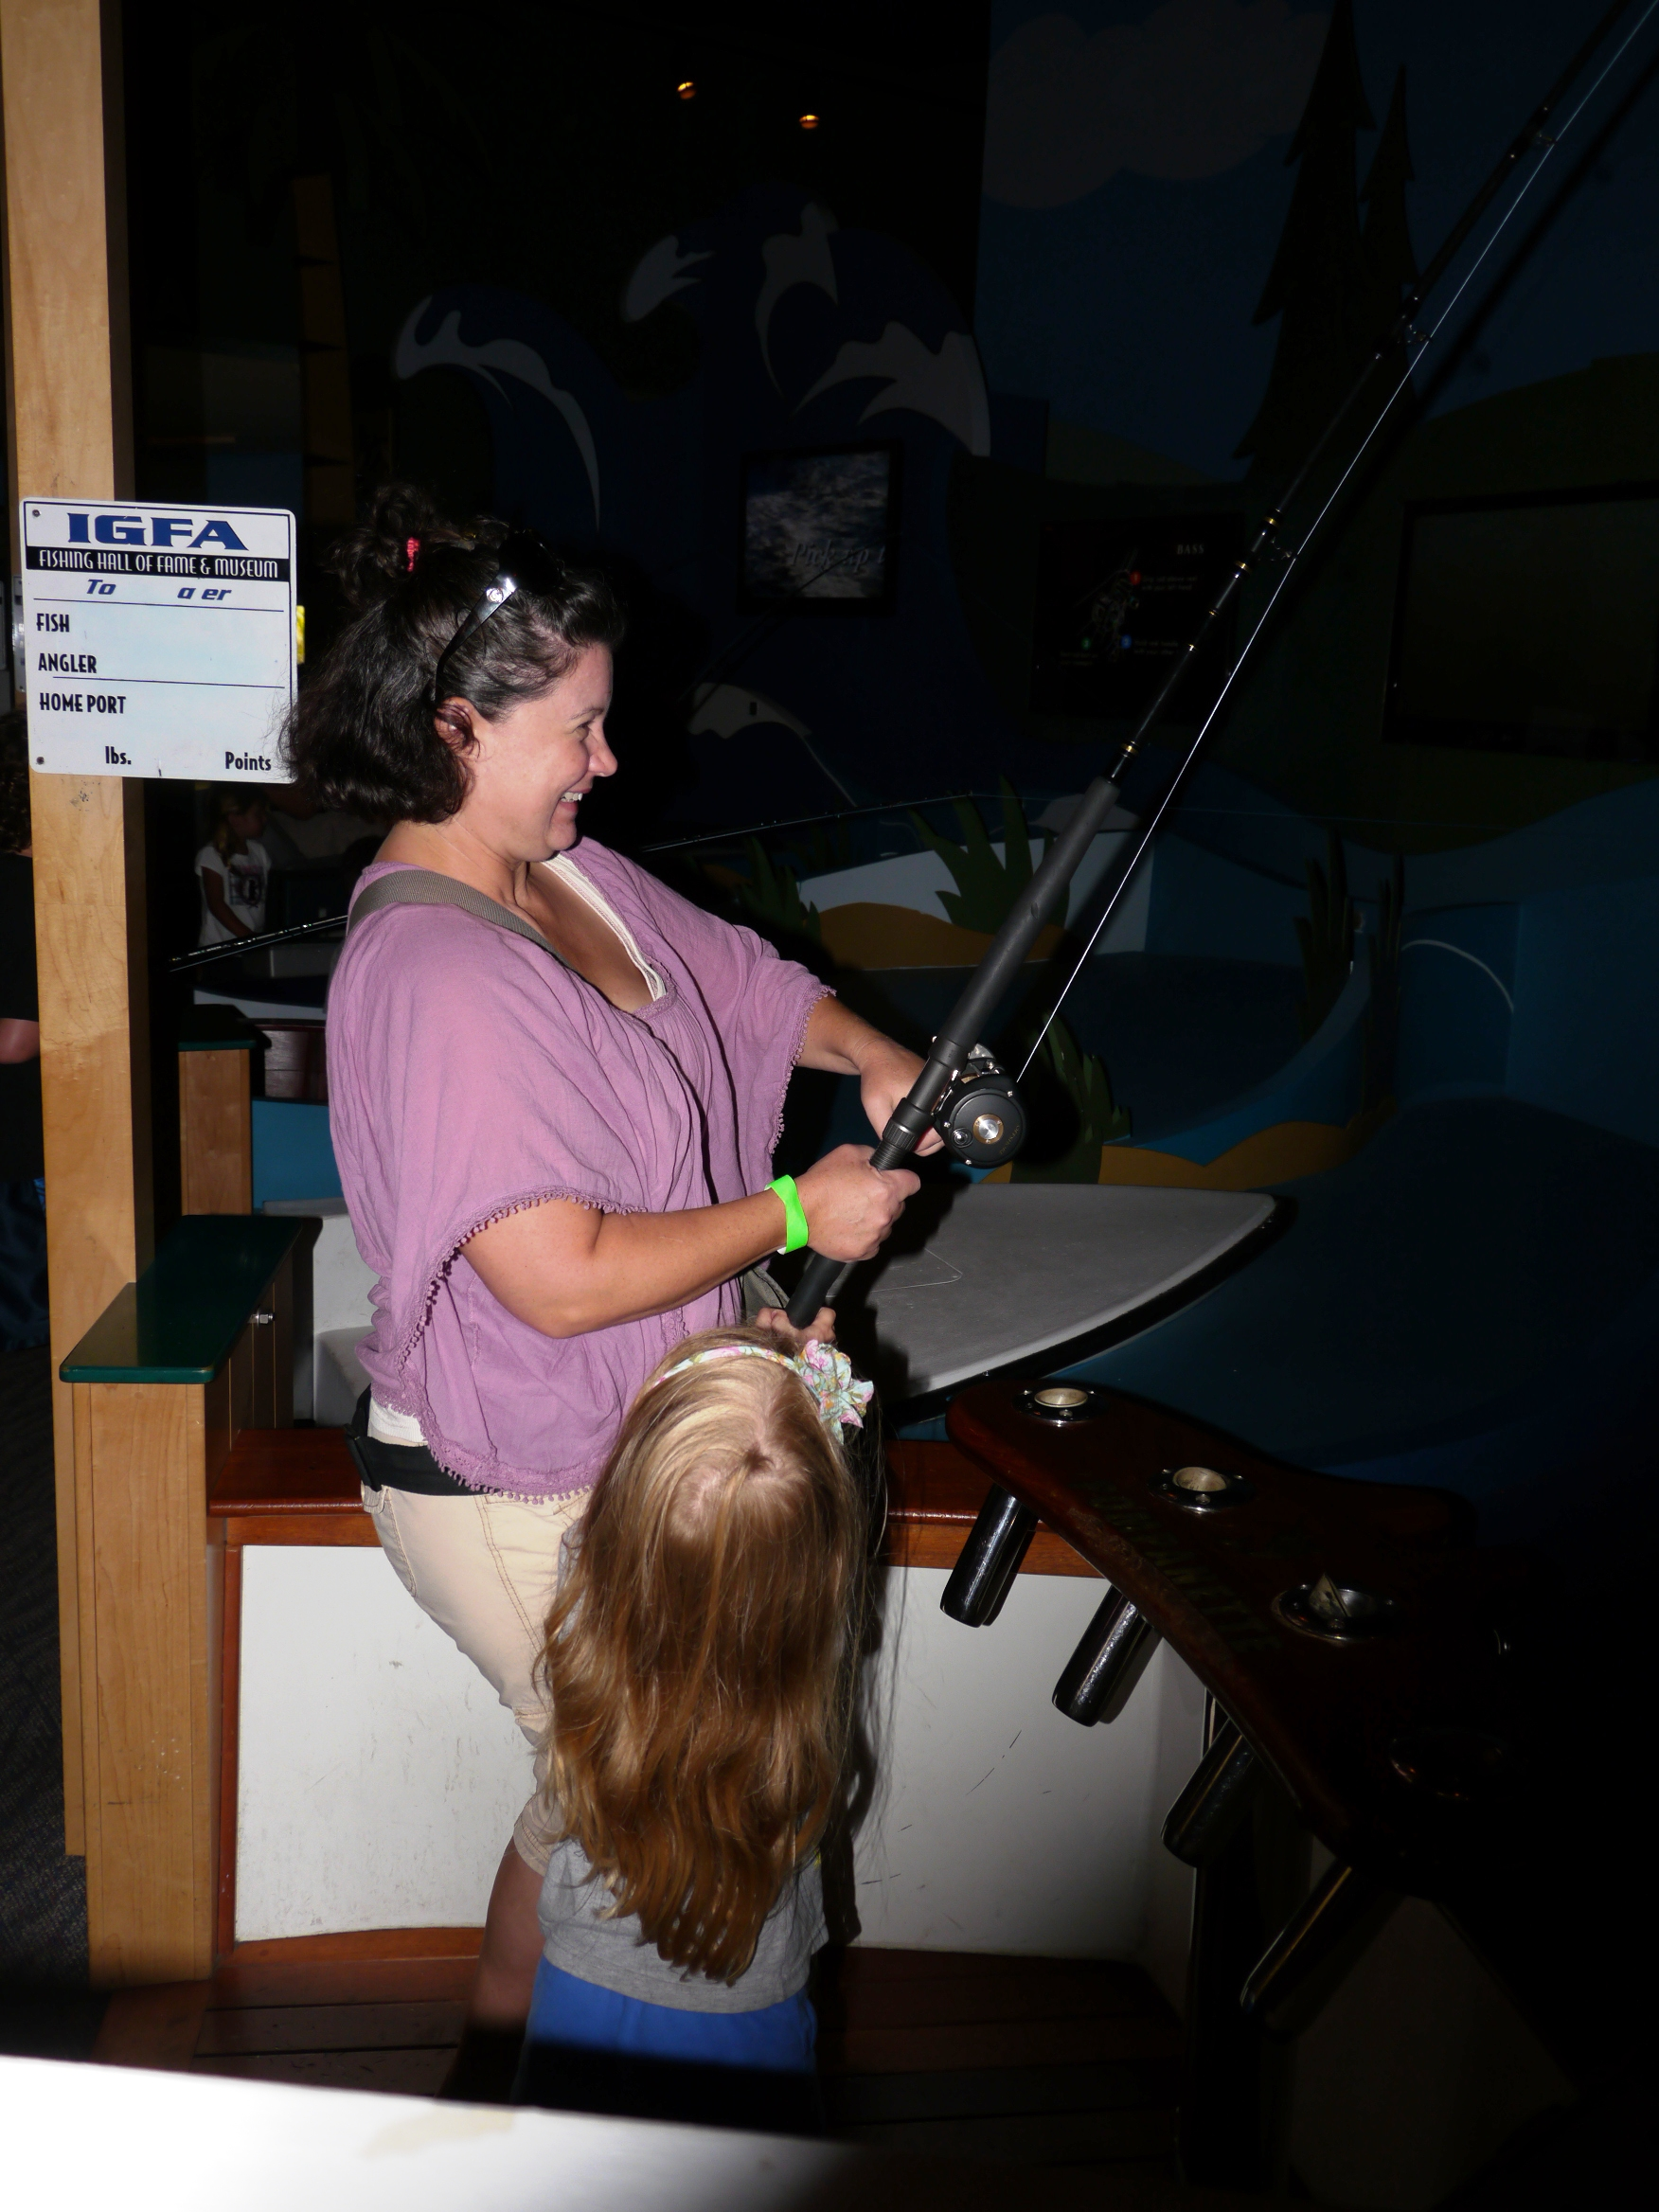 Virtual Fishing Game Room at Fishing Hall of Fame Museum